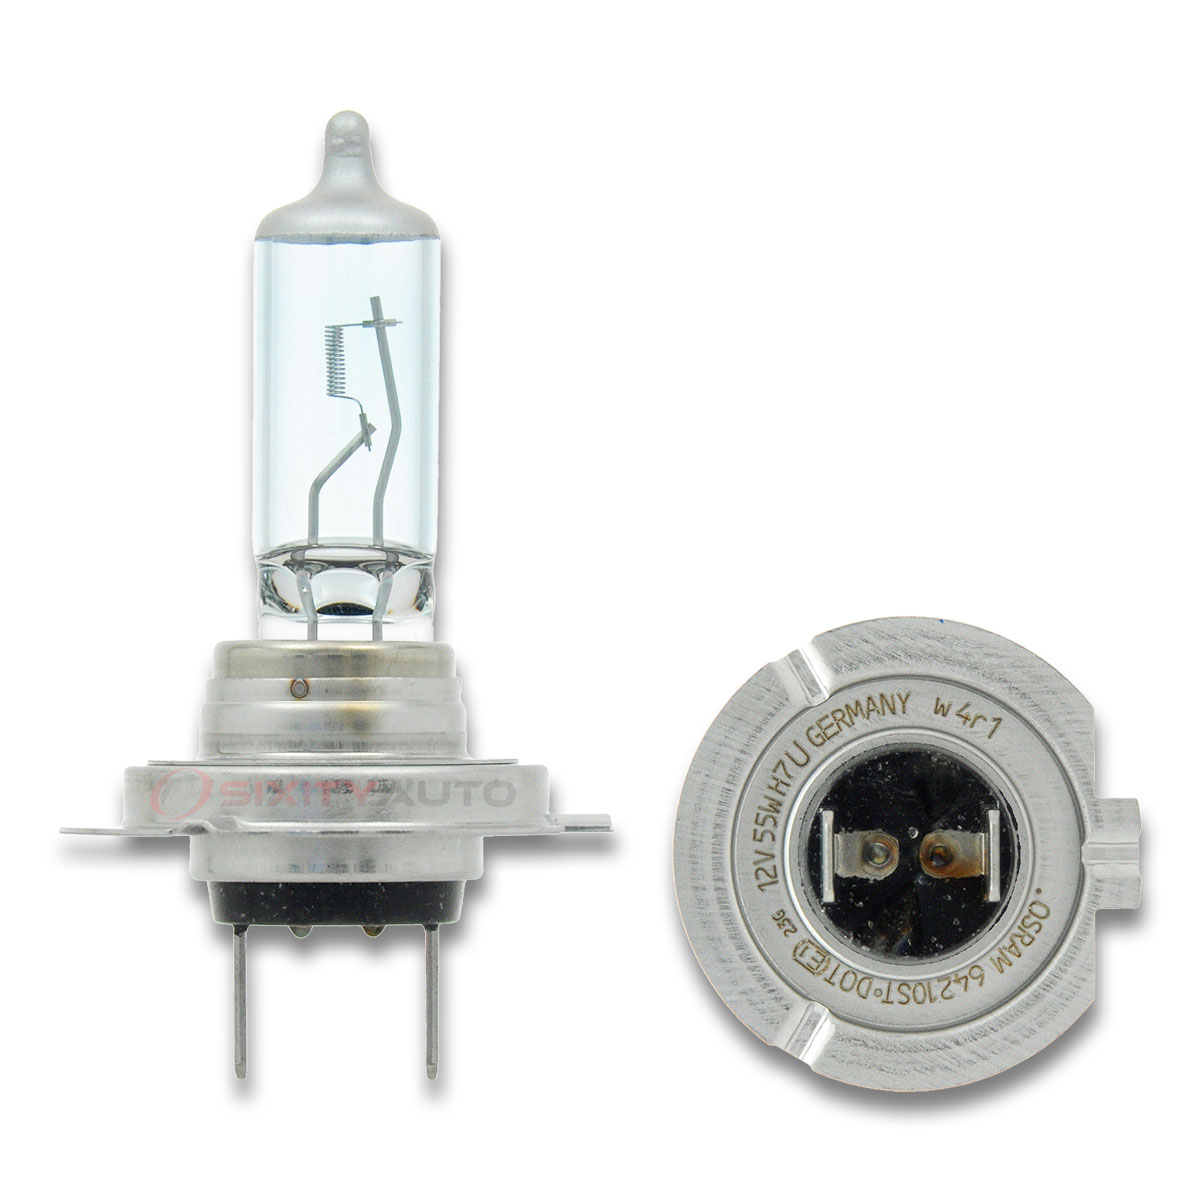 sylvania silverstar - high beam headlight bulb - 1996-2016